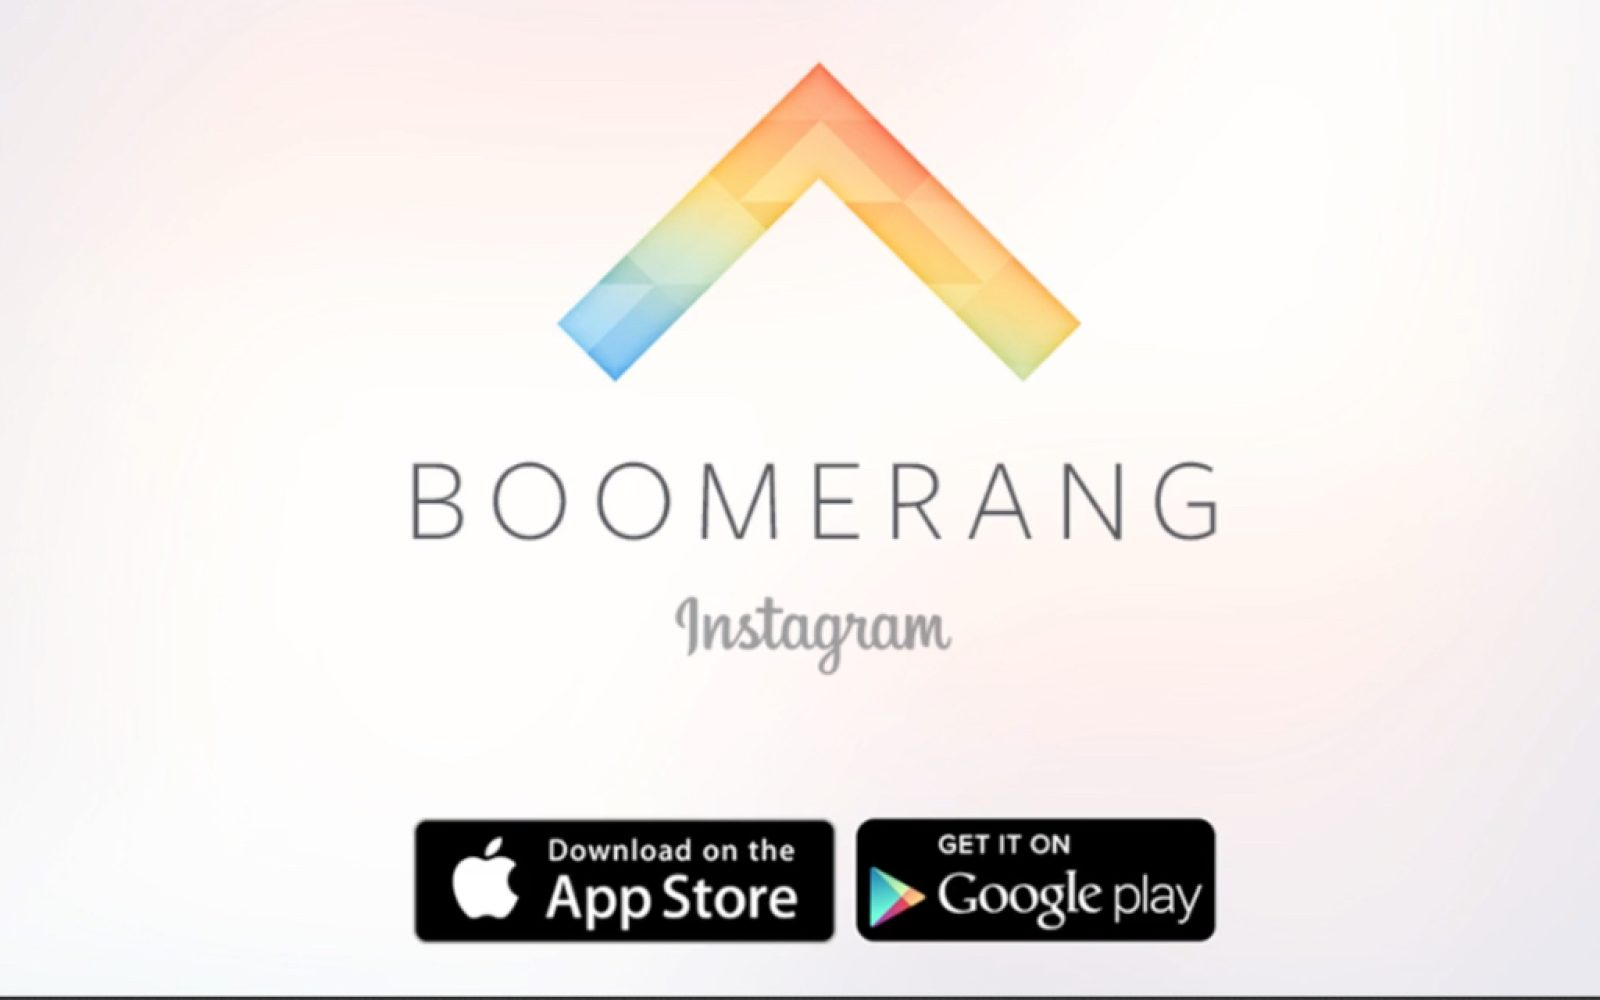 Instagram intros Boomerang, a new 1-second video looping app for